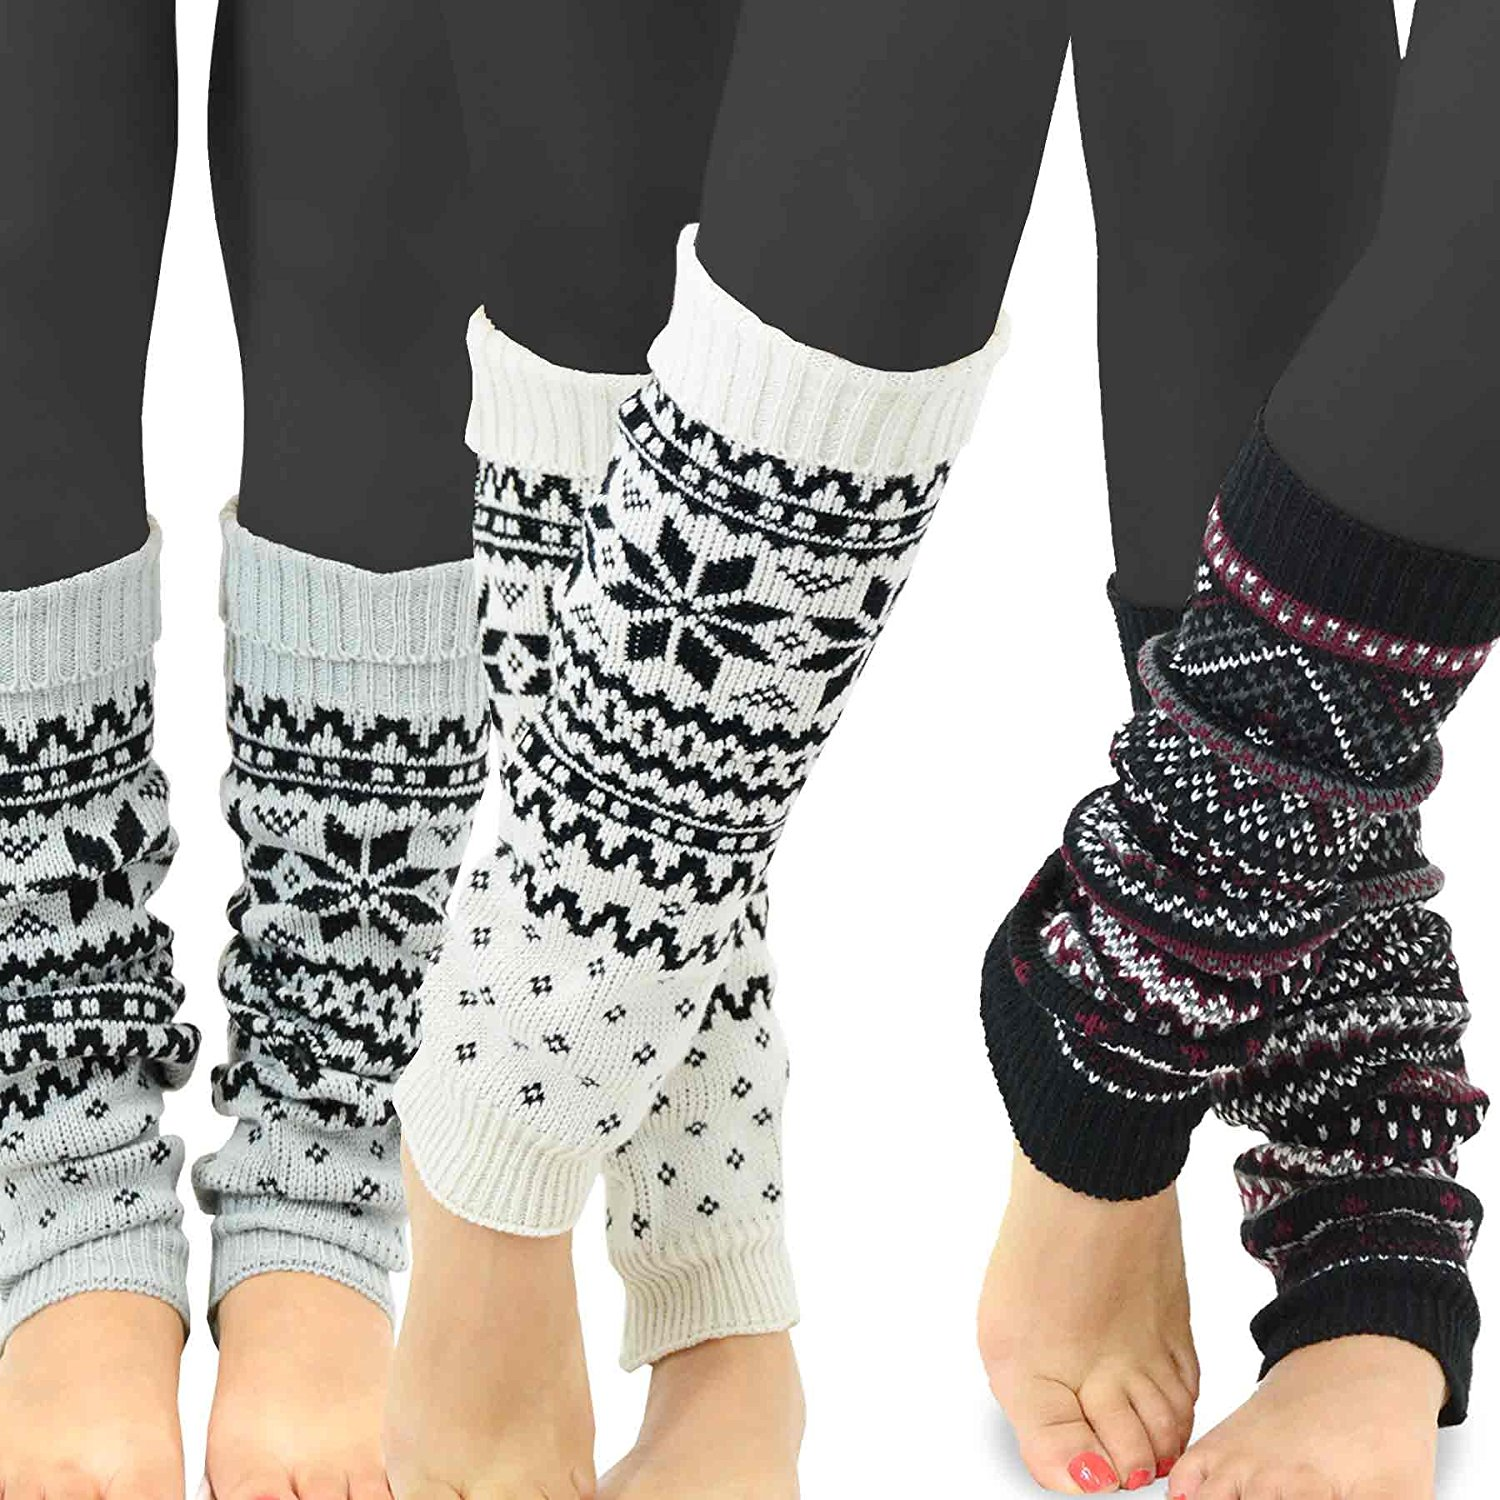 TeeHee Women's Fashion Leg Warmers 3-Pack Assorted Colors